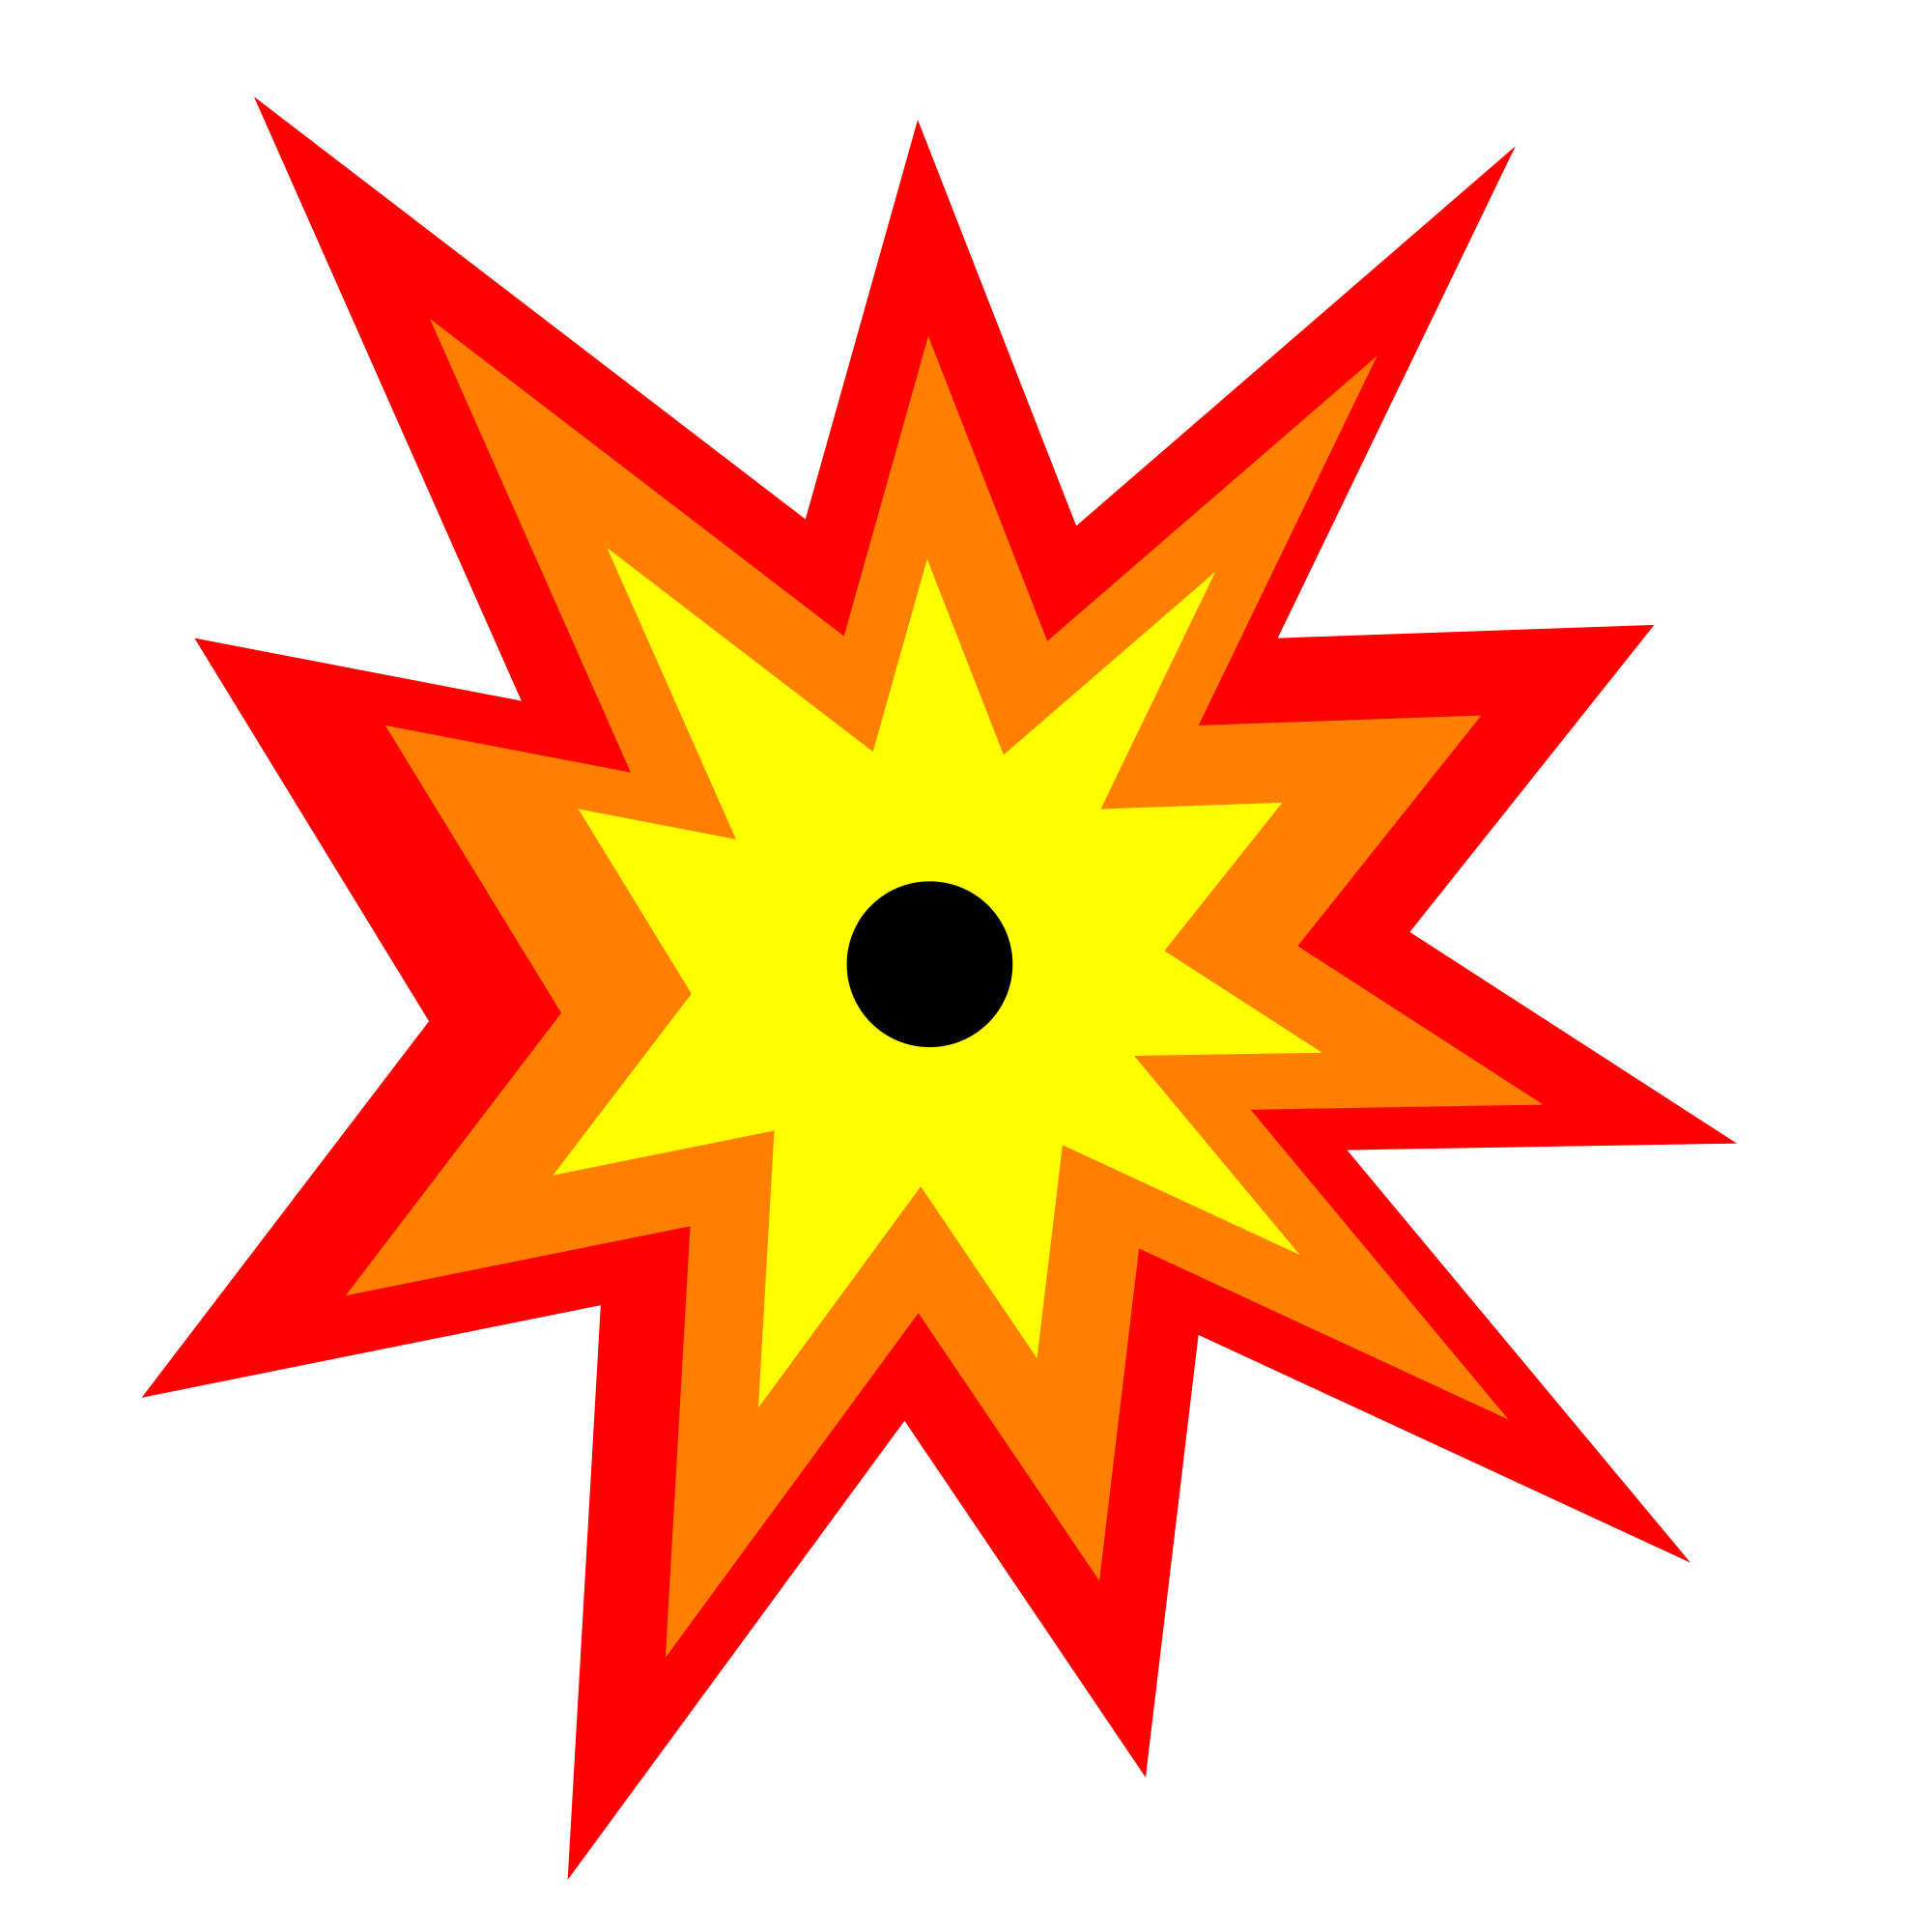 File icon wikimedia commons. Clipart explosion svg